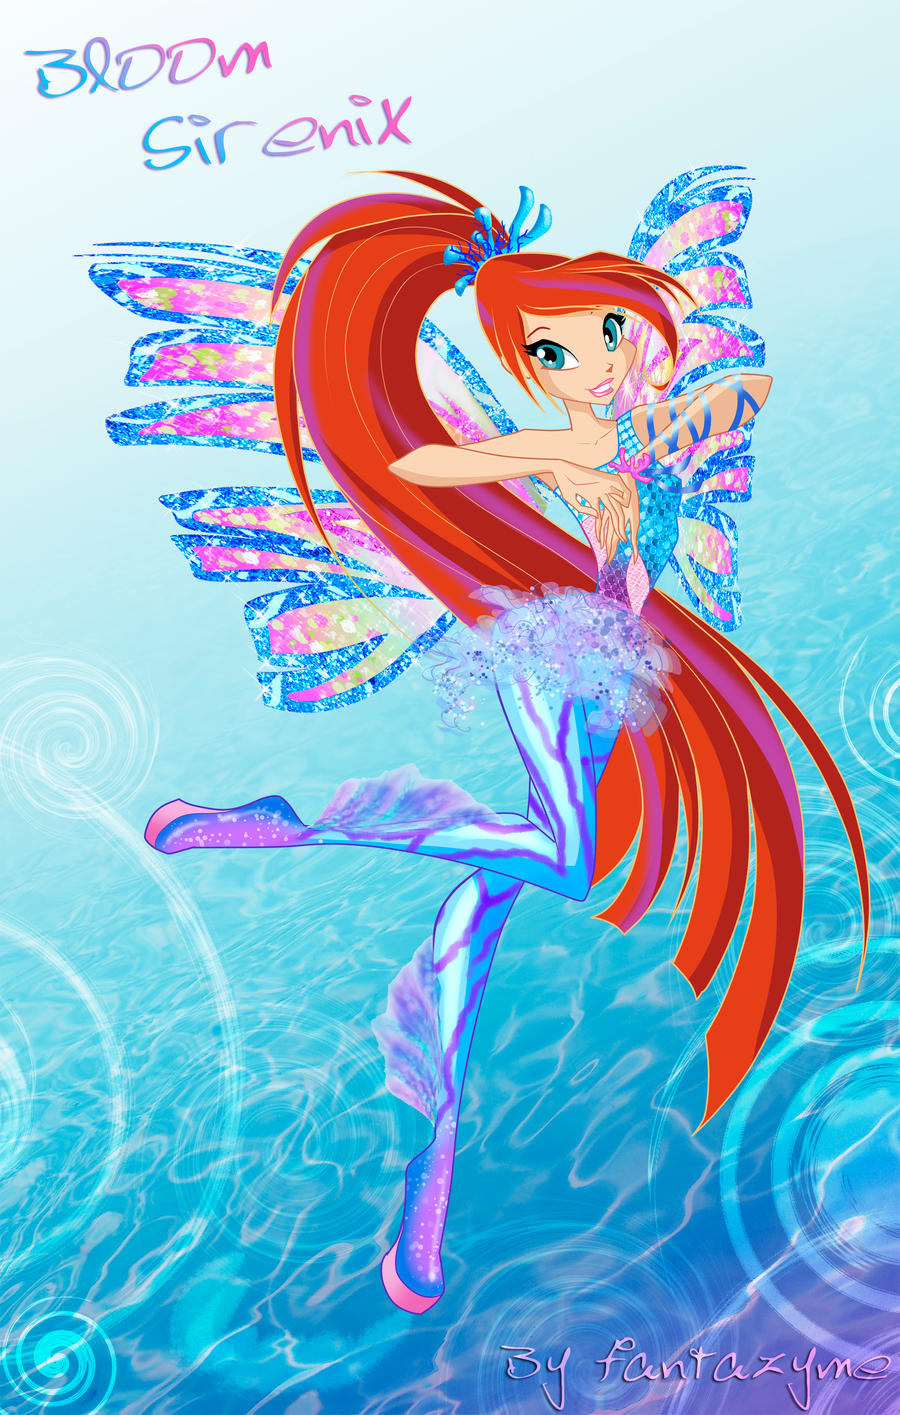 Winx 5 season Bloom Sirenix by fantazyme